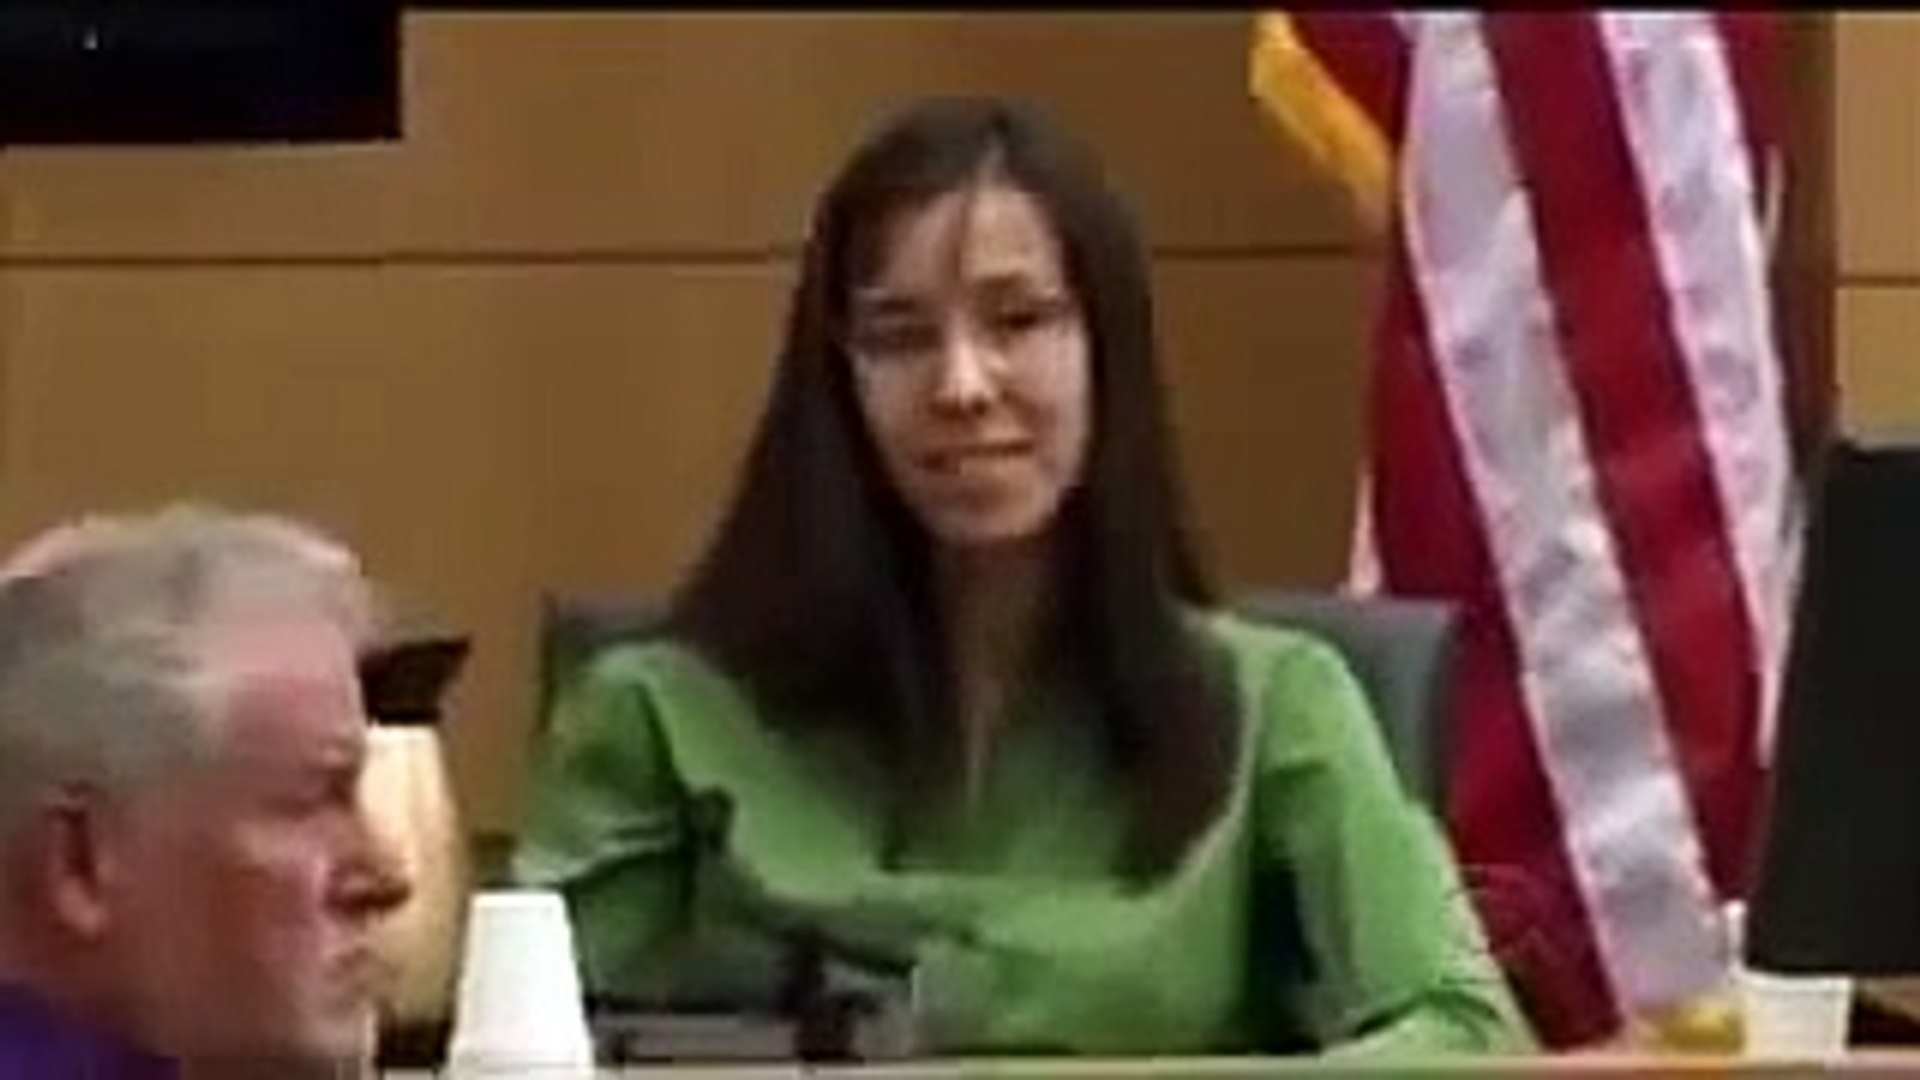 Jodi Arias Sex Pics unraveling the lies of jodi arias the covicted killer of travis alexander